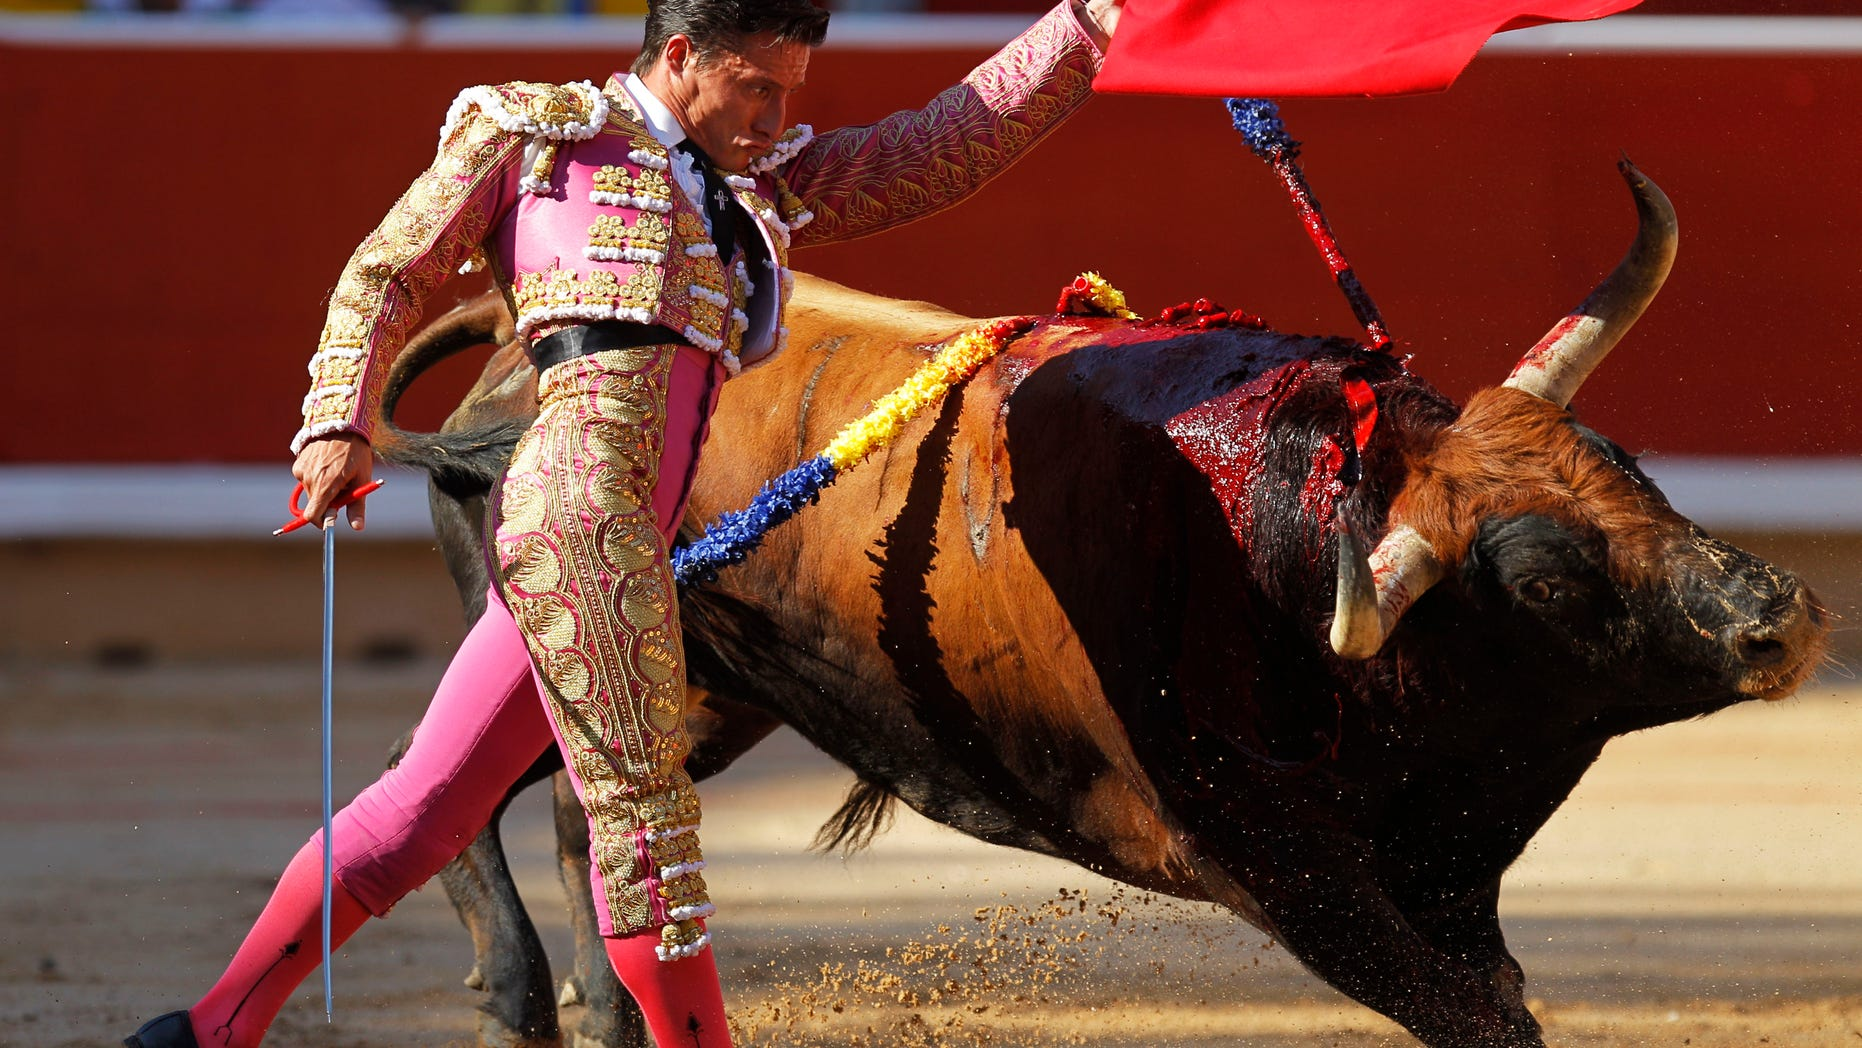 Spanish bullfighter Diego Urdiales makes a pass to Penajara ranch bull during the first bullfight of the San Fermin fiestas on Wednesday, July 7, 2010, in Pamplona, Spain. (AP Photo/Victor R. Caivano)